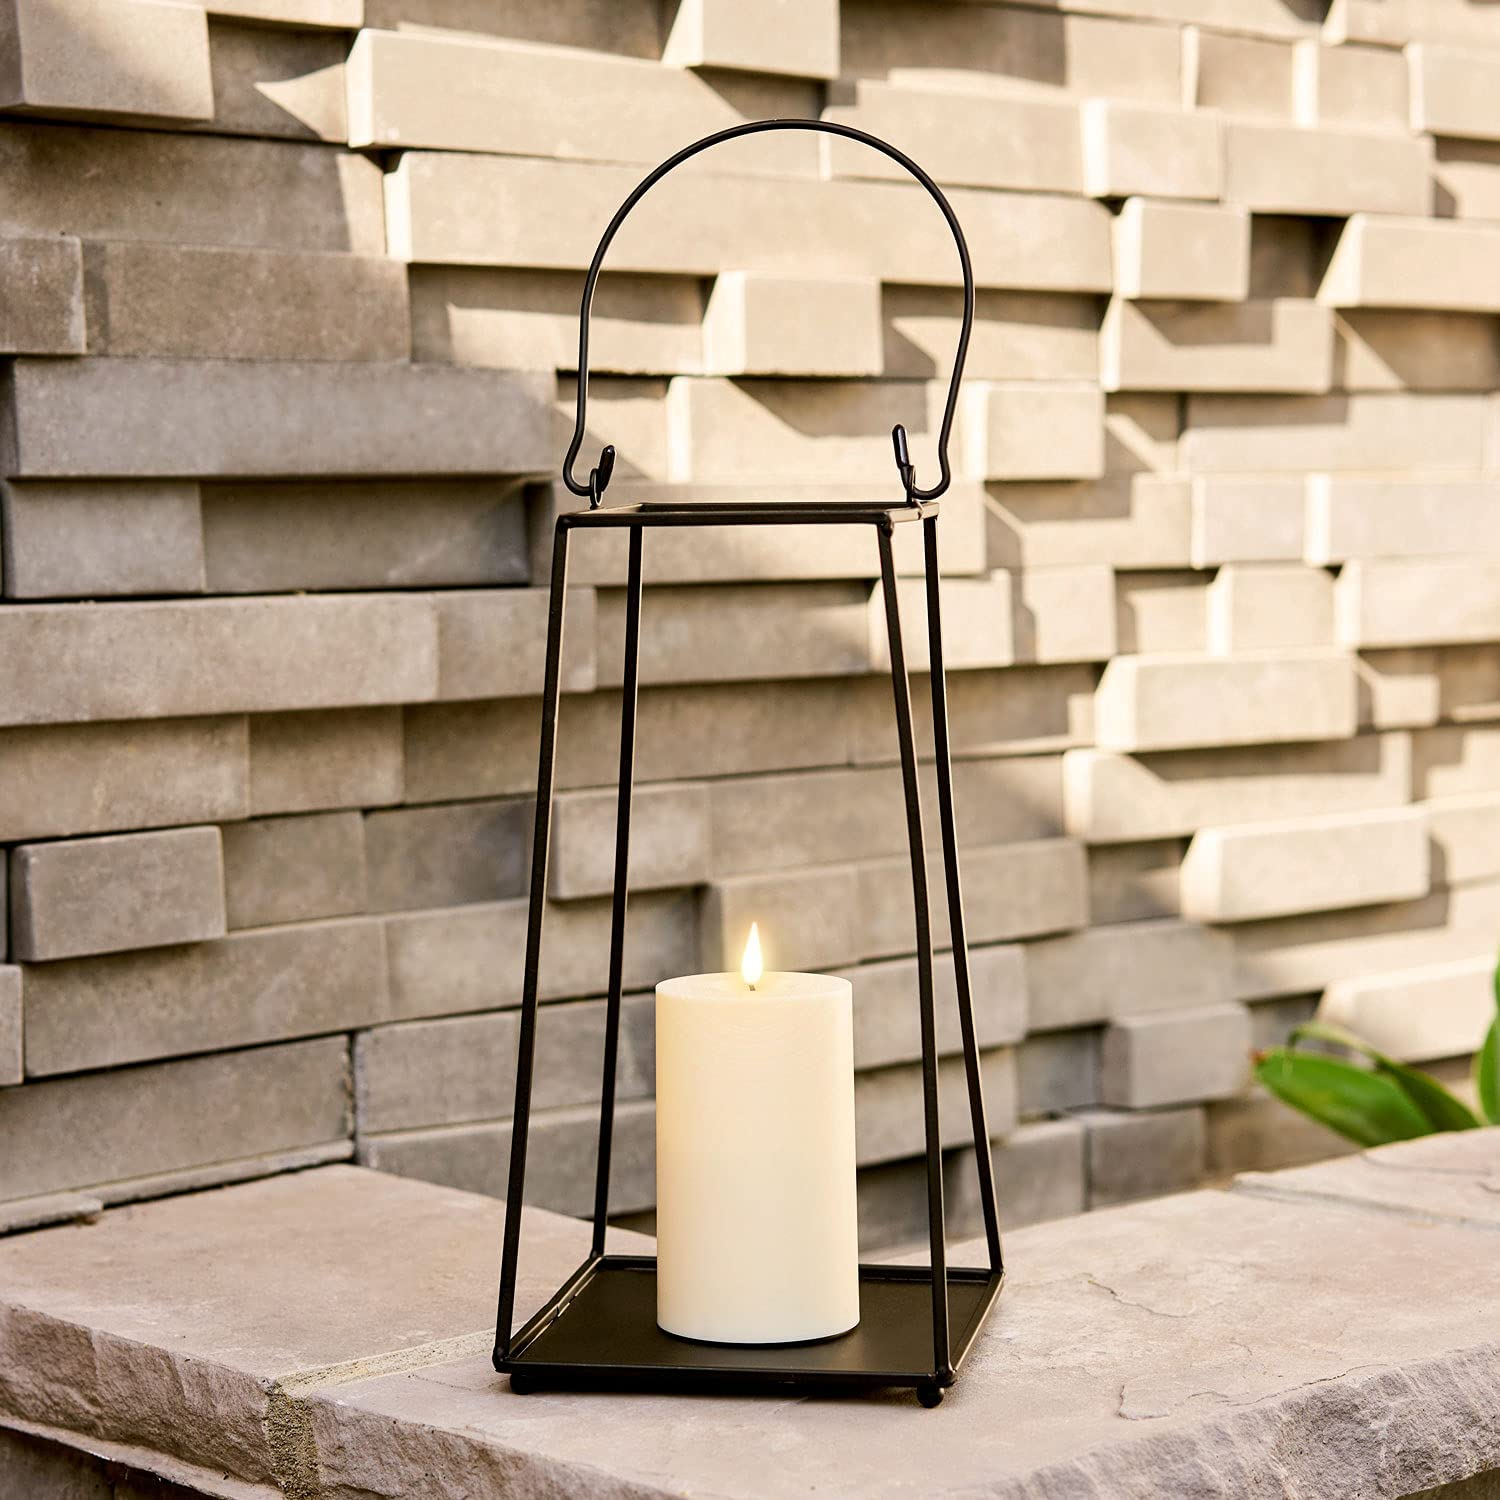 Black Metal Candle Lantern - 12 Inch Decorative Lantern with Realistic Flameless Candle, Battery Operated, Flickering LED Light, Open (No Glass) Waterproof for Outdoor Porch or Patio Decor